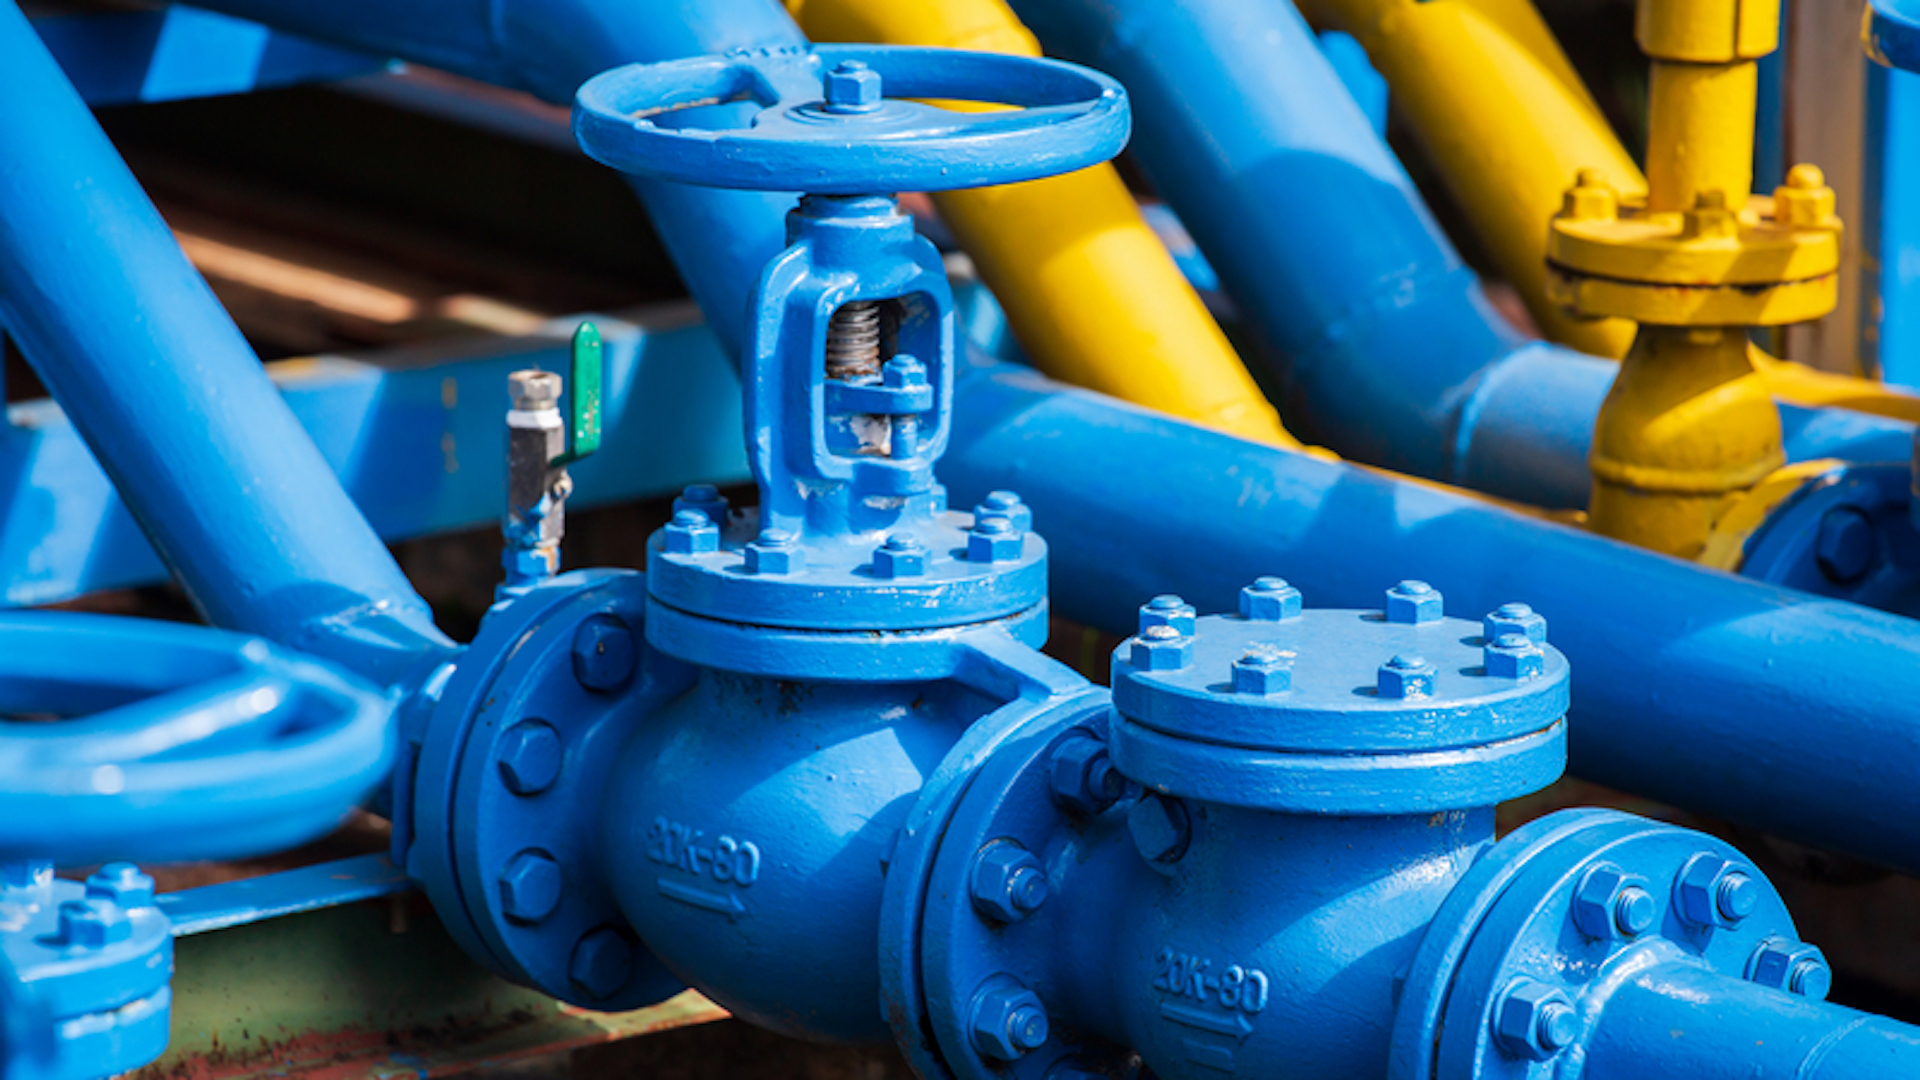 Policy Win: The Energy Regulator Launched Daily Balancing on the Natural Gas Market